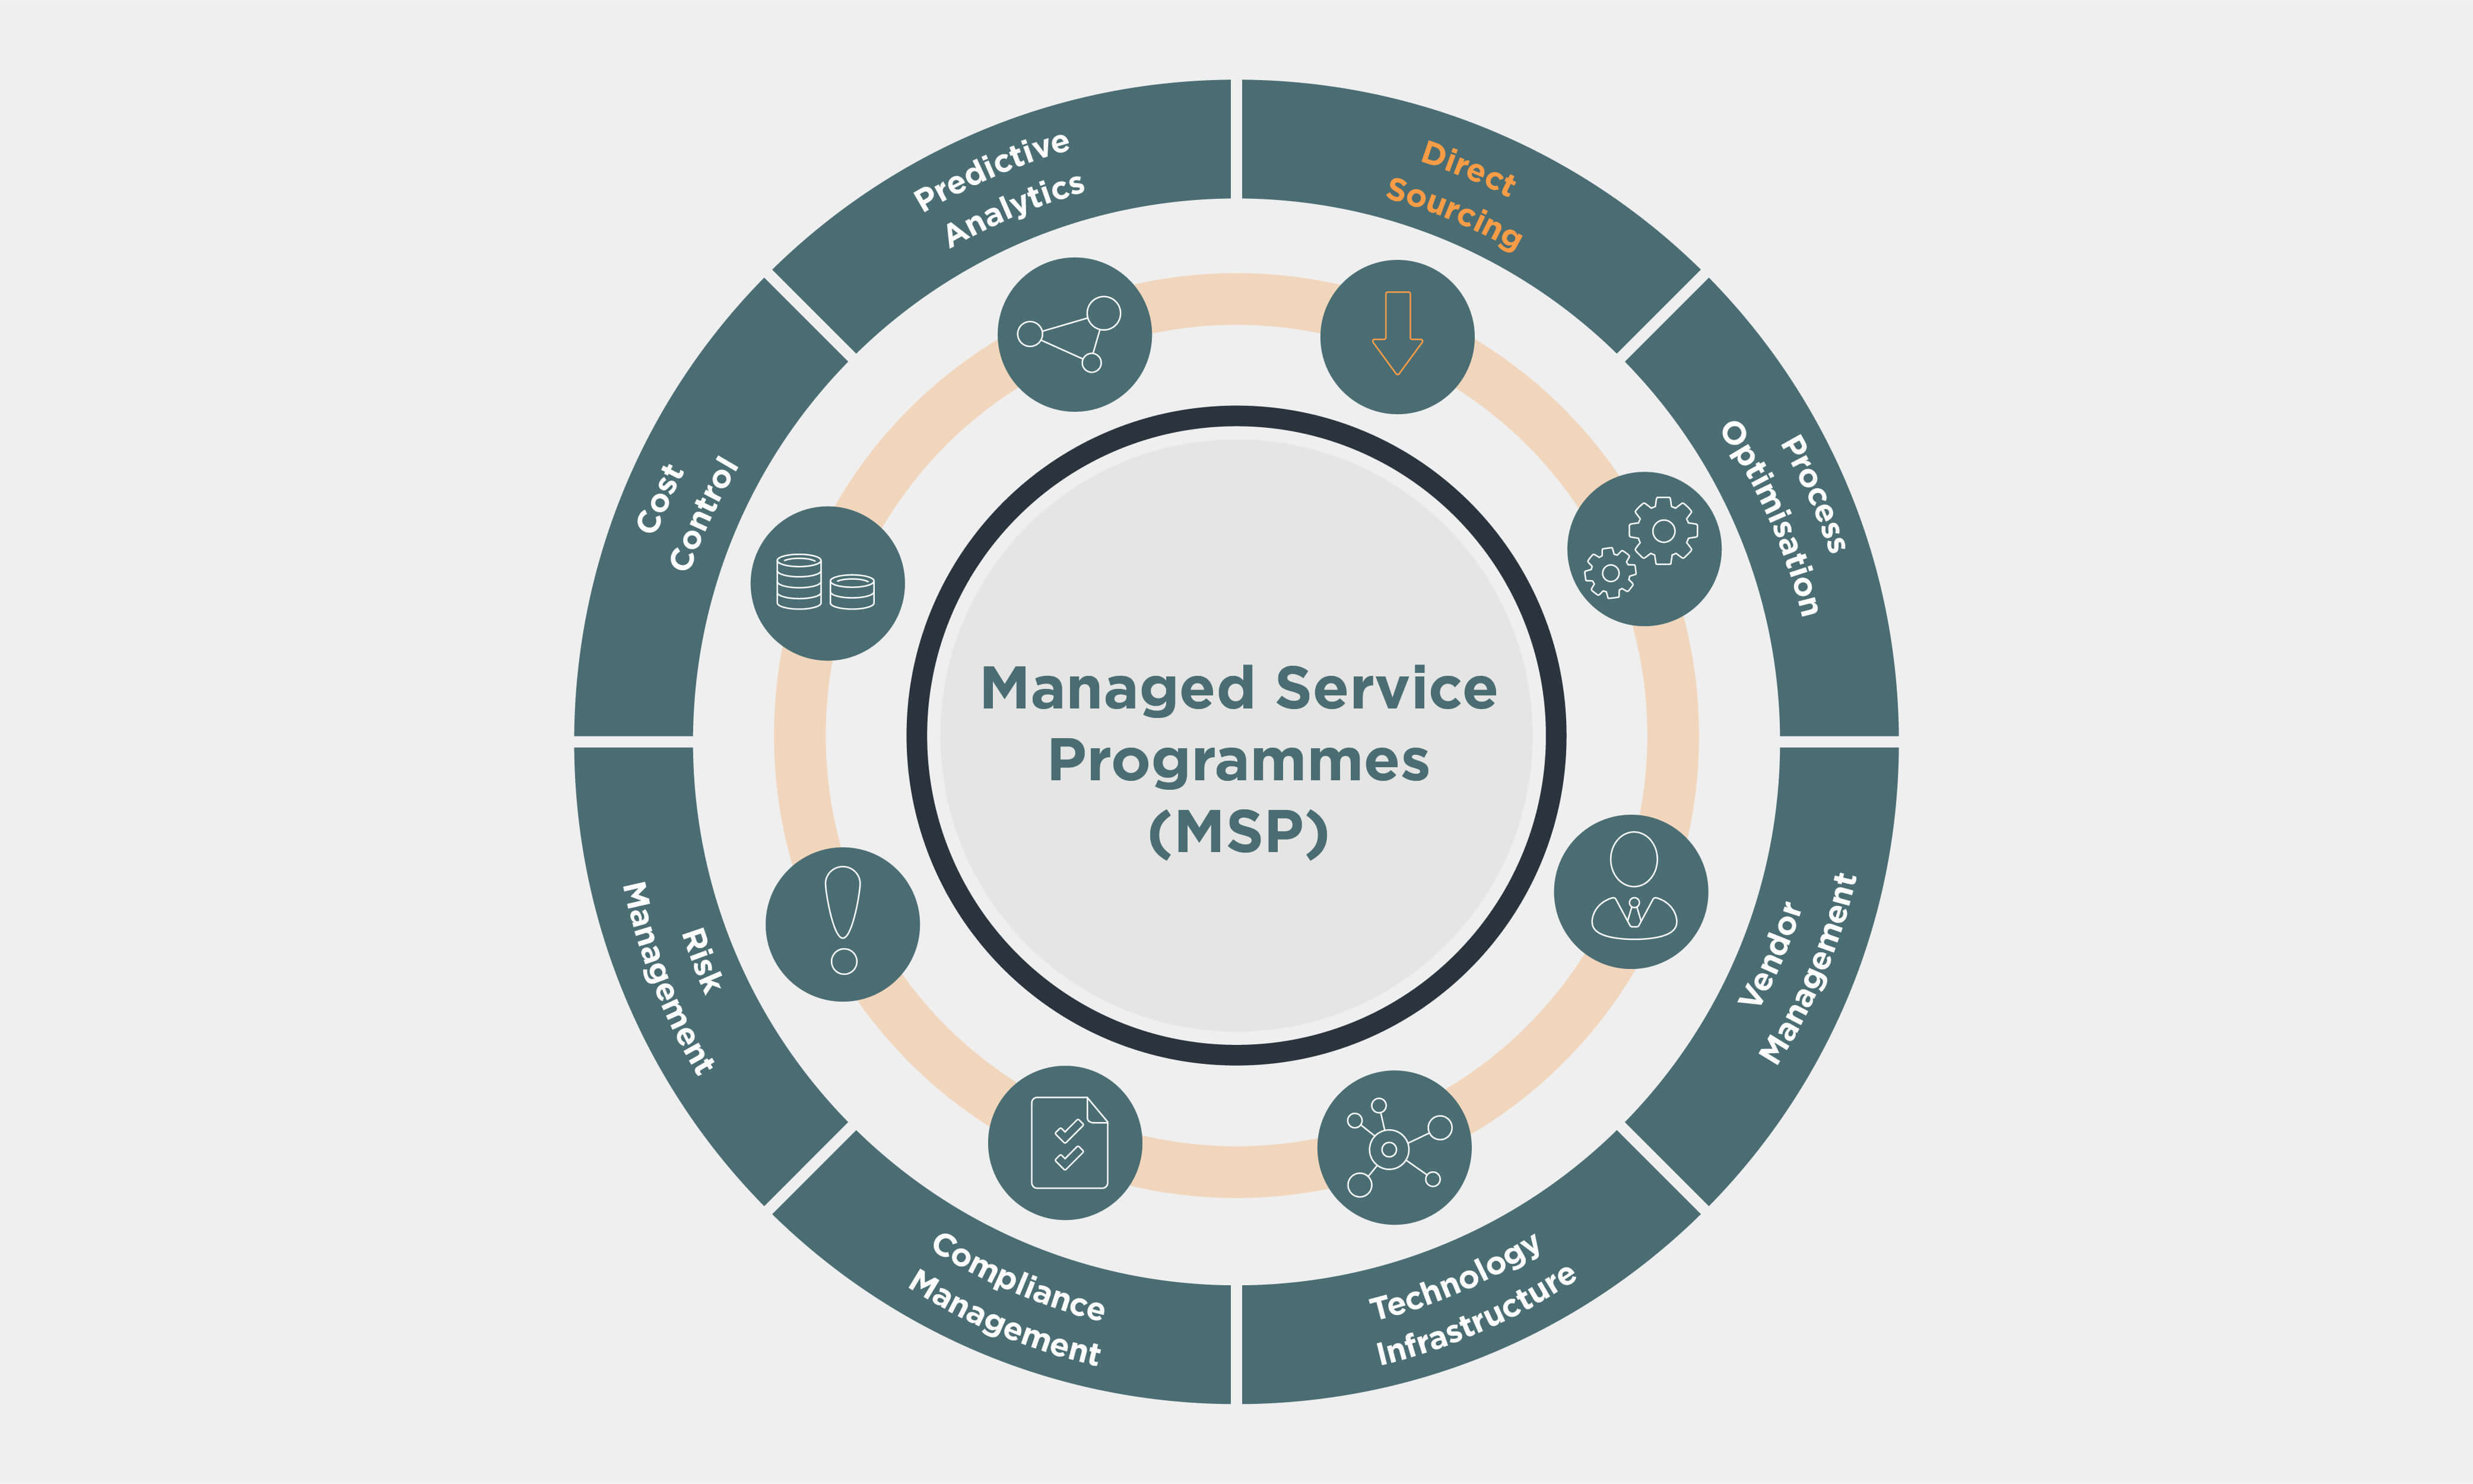 Managed Service Programmes (MSP) wheel with Direct Sourcing highlighted in orange